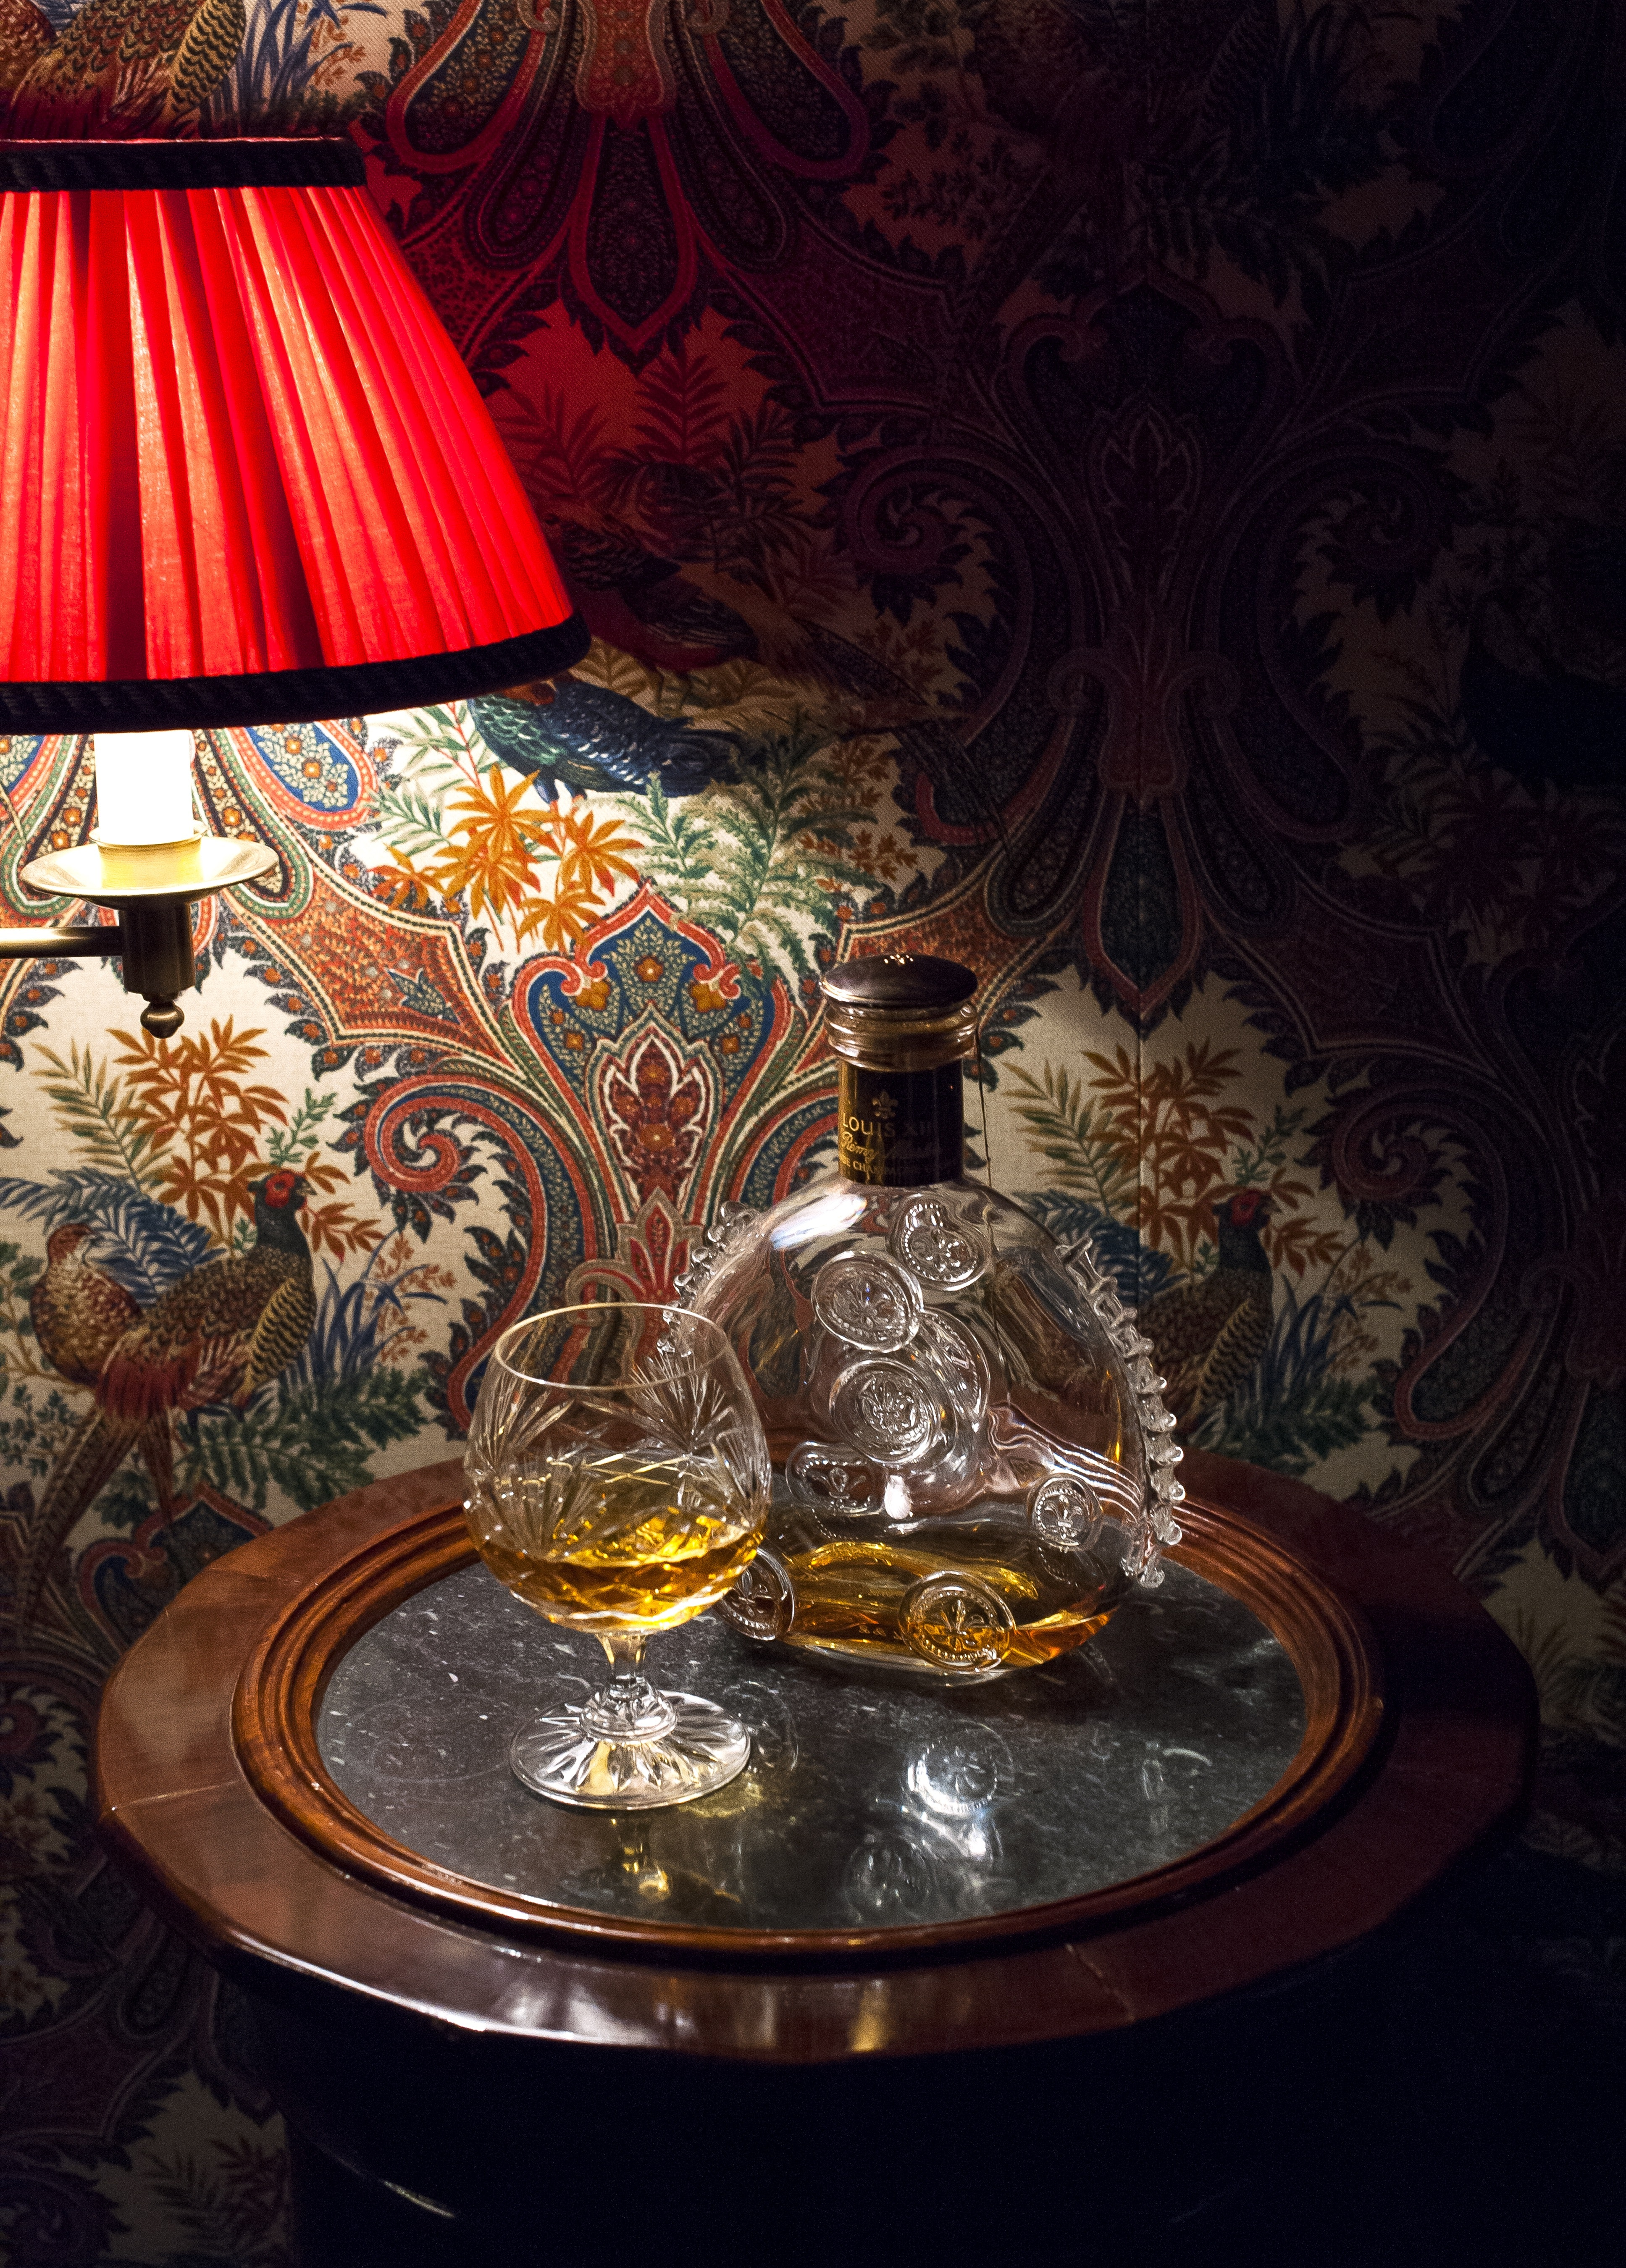 A glass of Remy Martin Louis XIII cognac awaits guests at Ashford Castle, a converted 1200s-era castle that's now a five-star hotel.